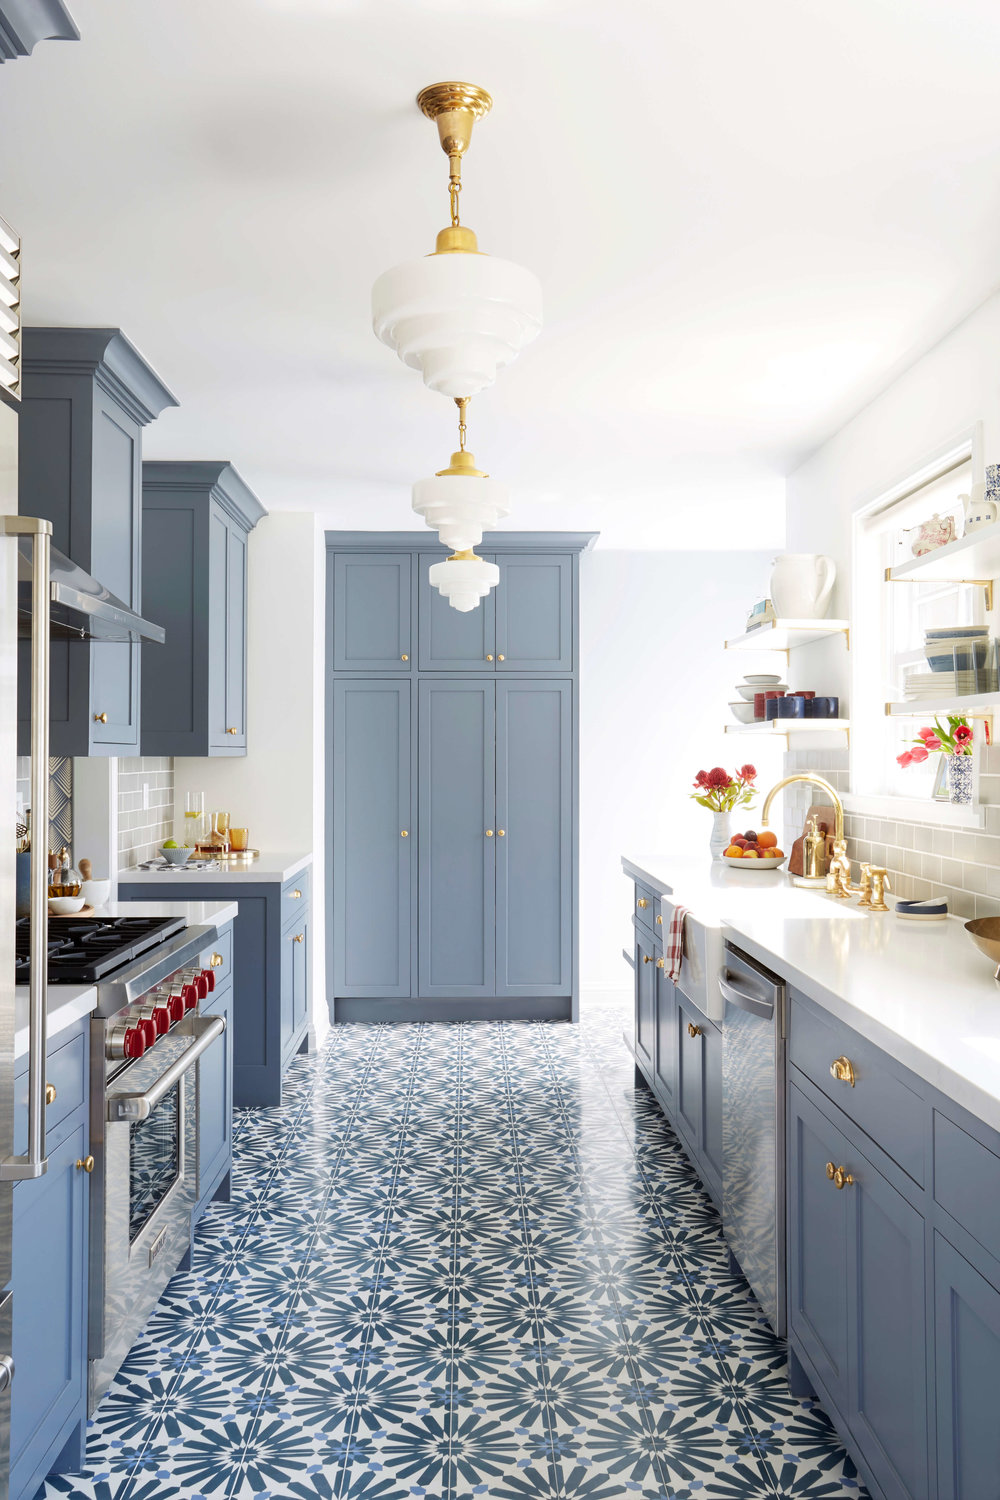 blue-and-white-kitchen-patterned-tile-floors